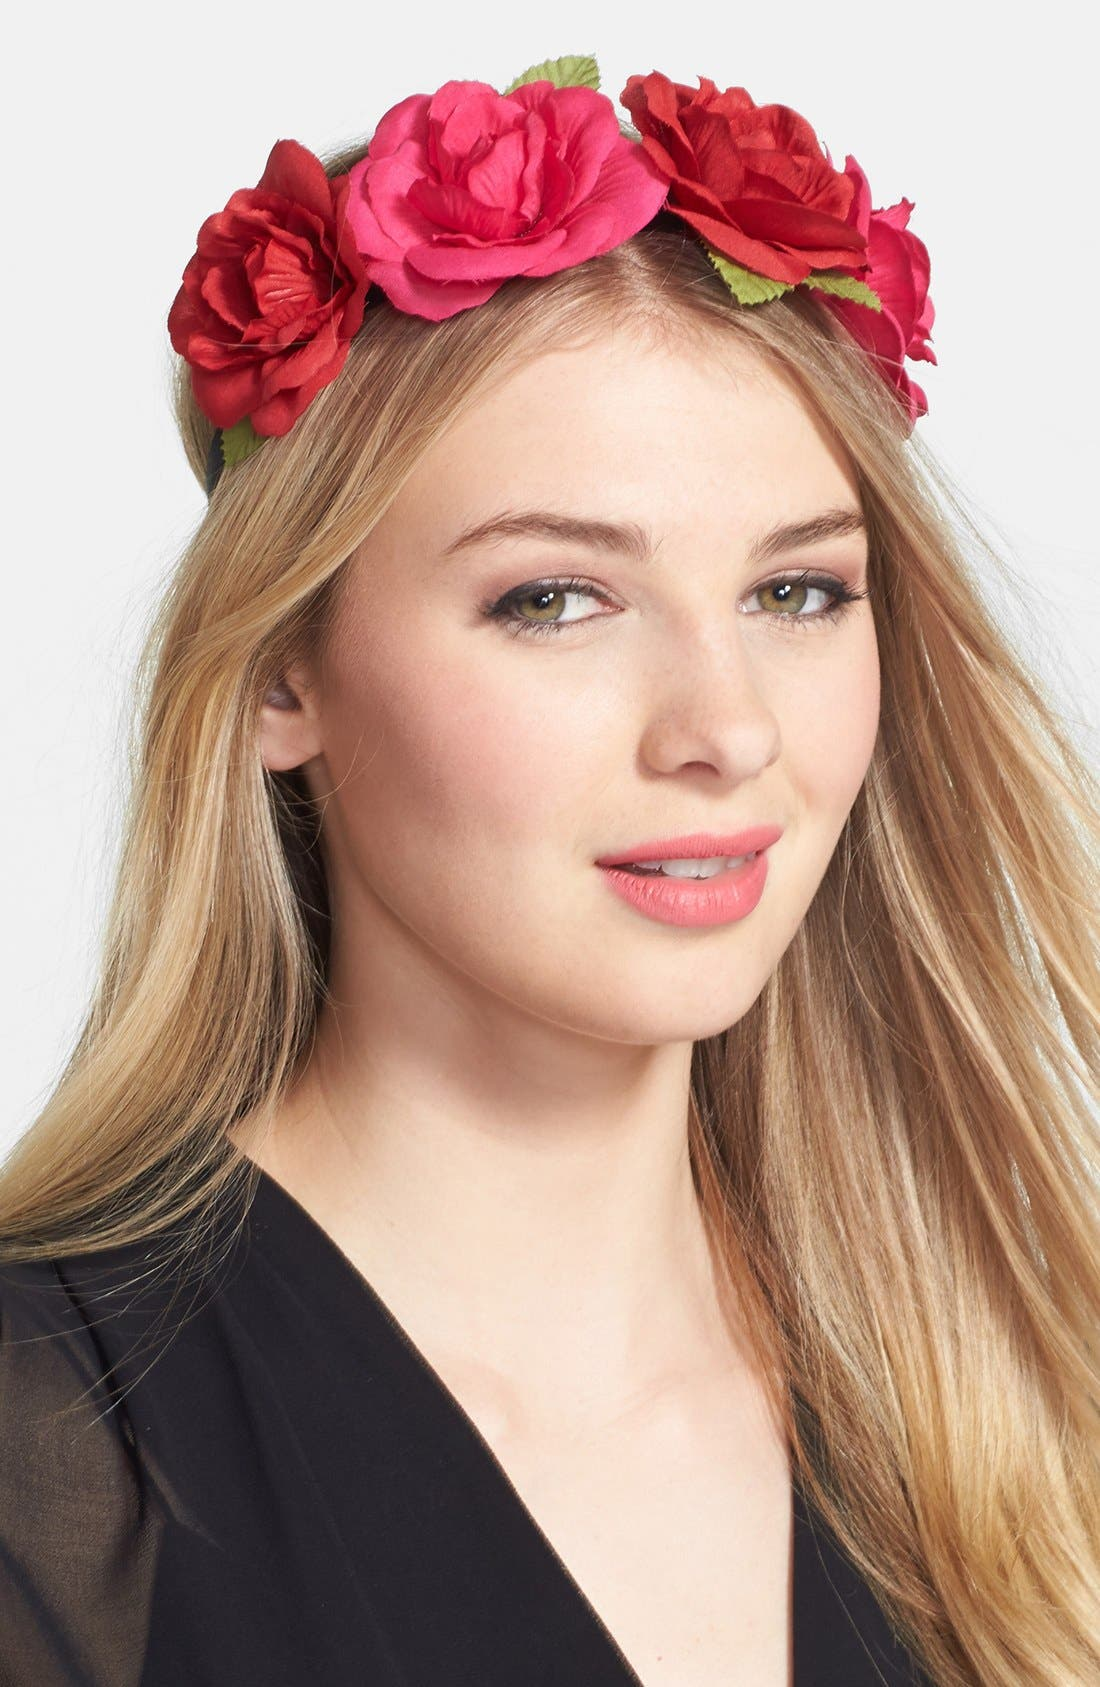 Alternate Image 1 Selected - Berry 'Floral Crown' Head Wrap